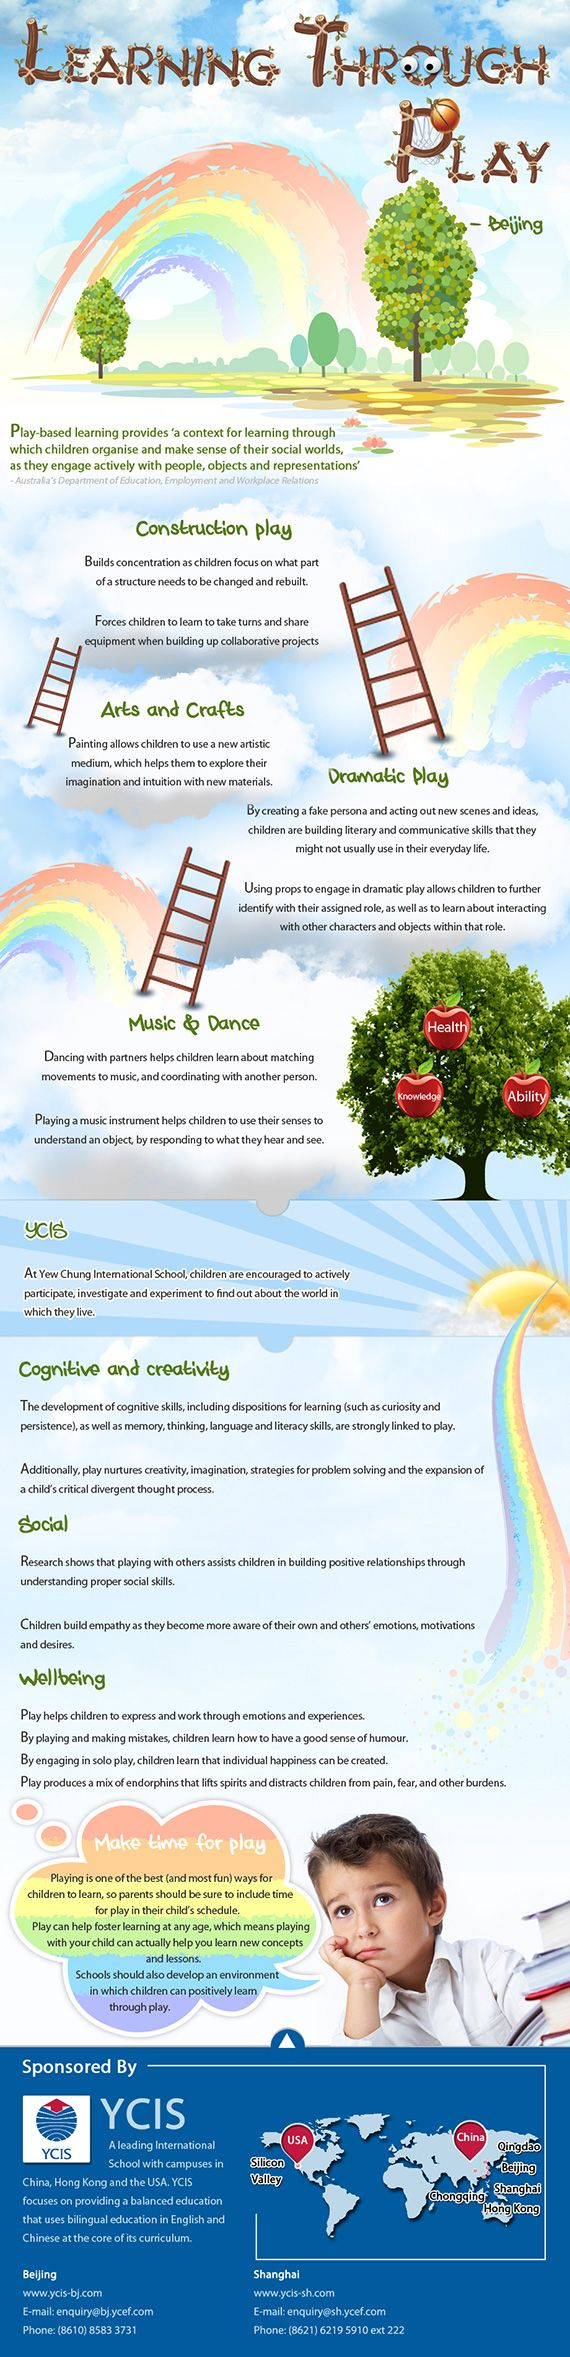 Learning Through Play #infografia #infographic #education